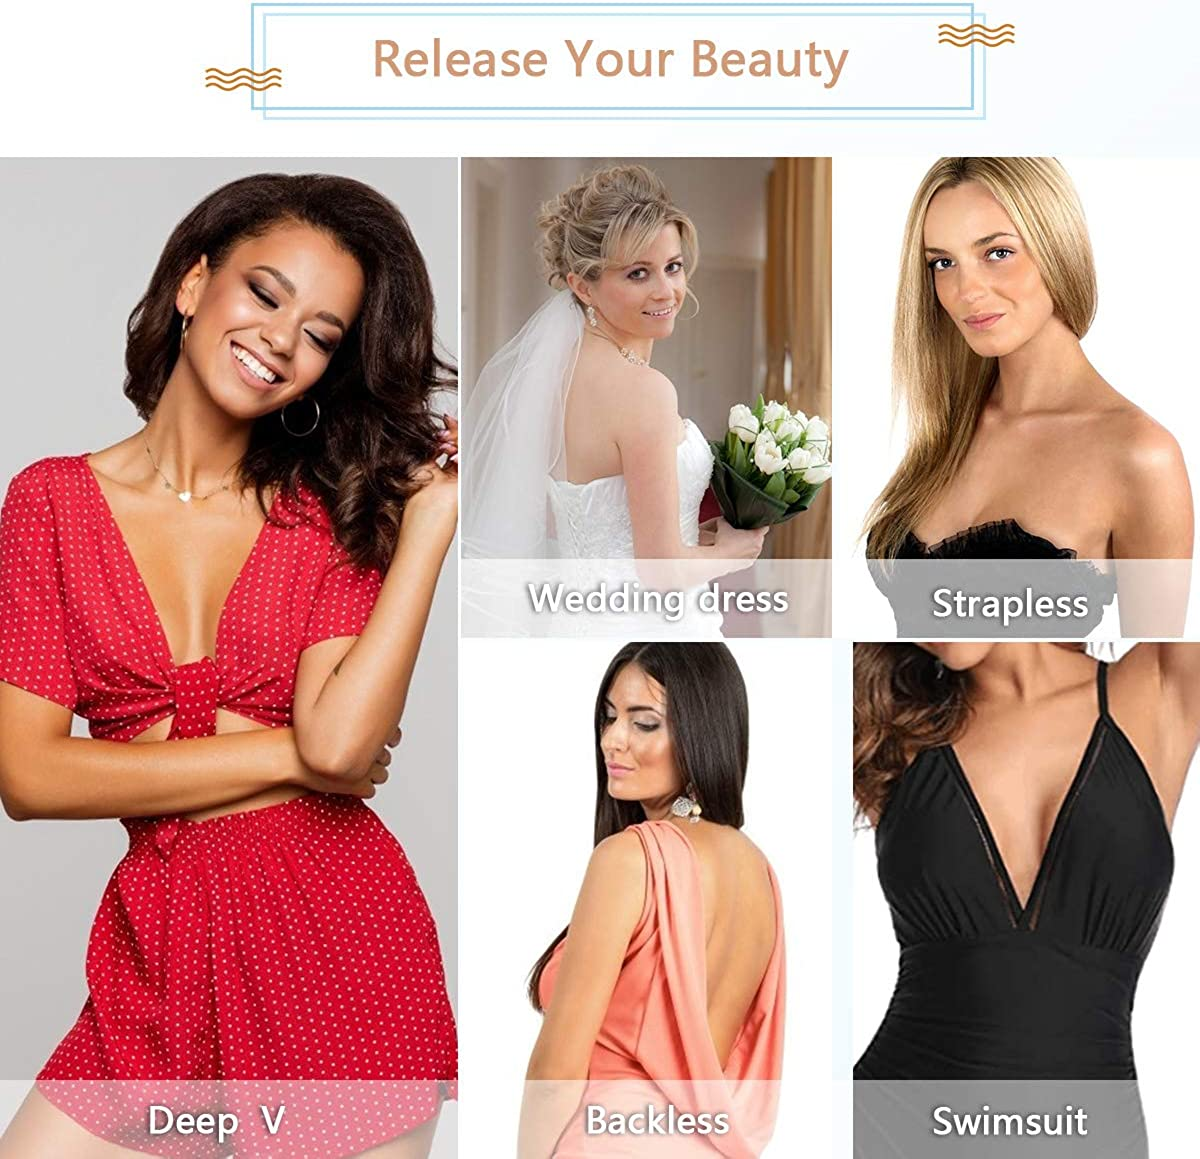 Self Adhesive Silicone Bra Invisible Lift up Bra Backless Strapless Adhesive Bra Reusable Stick on Bra Breast Lift Pasties Women Silicone Bra for D DD Cup Nude Breast Petal